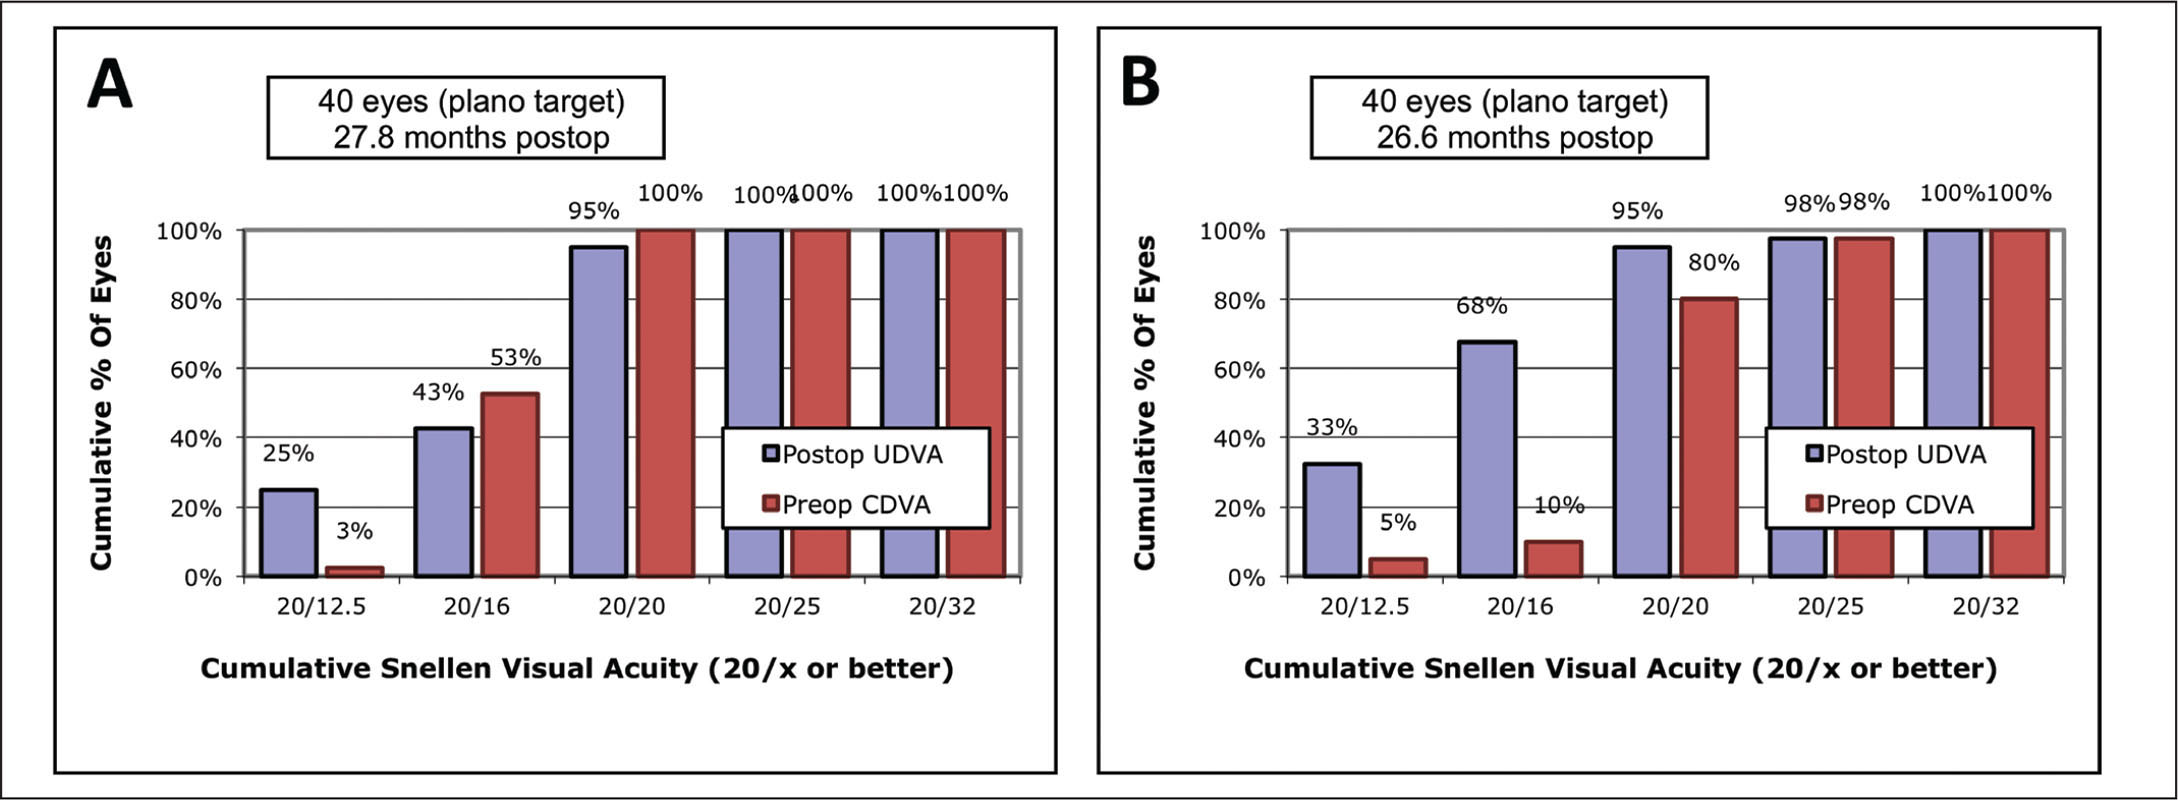 Comparison of efficacy between (A) small incision lenticule extraction (SMILE) and (B) implantable Collamer lens (ICL) implantation (Visian Implantable Collamer Lens; STAAR Surgical, Monrovia, CA) for high myopia. In the ICL group, more eyes achieved an uncorrected distance visual acuity (UDVA) of 20/16 or better (68% vs 43%; P = .025). The efficacy index was higher after ICL implantation than SMILE (1.28 vs 1.05; ±0.25). corrected distance visual acuity (CDVA).